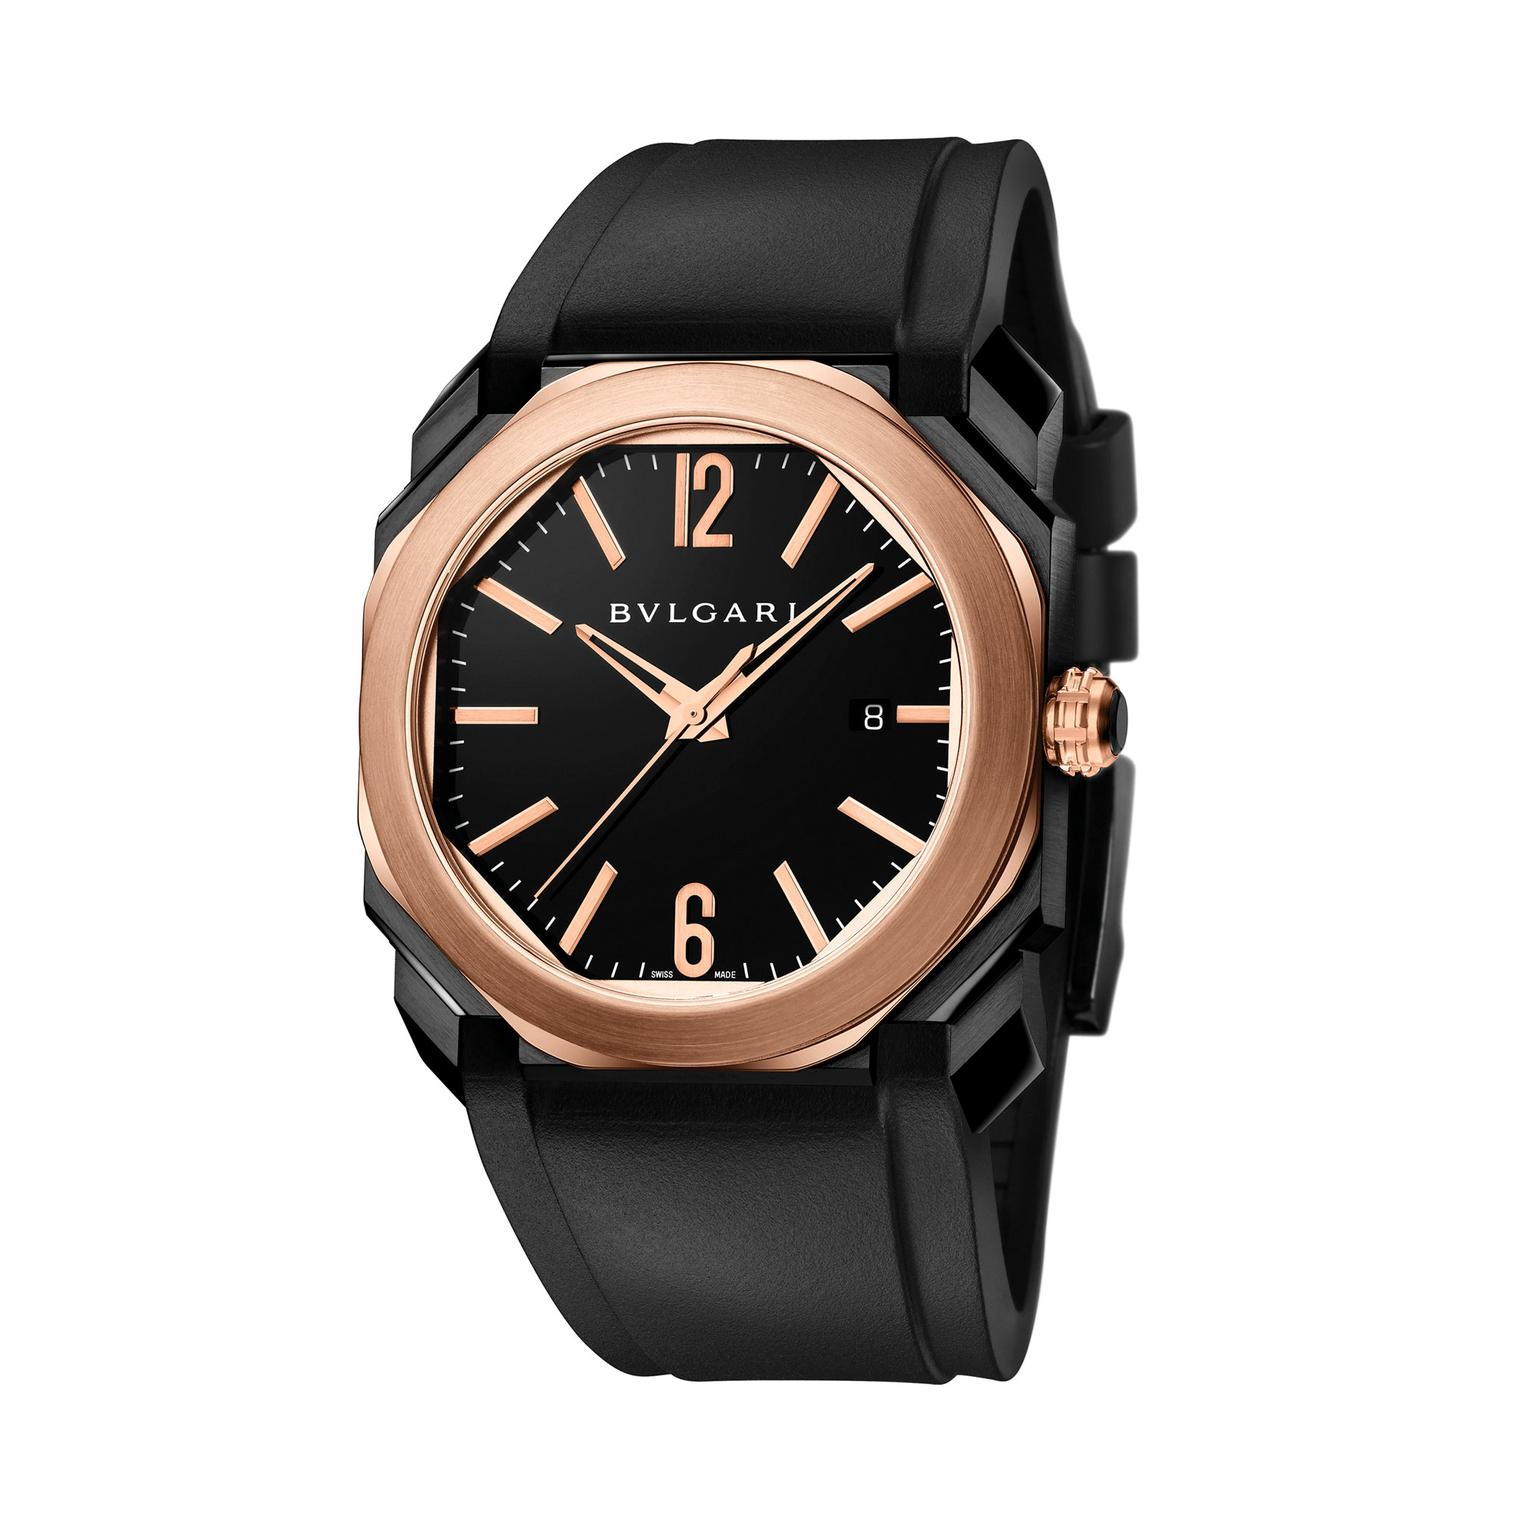 Bulgari Octo Ultranero Solotempo watch